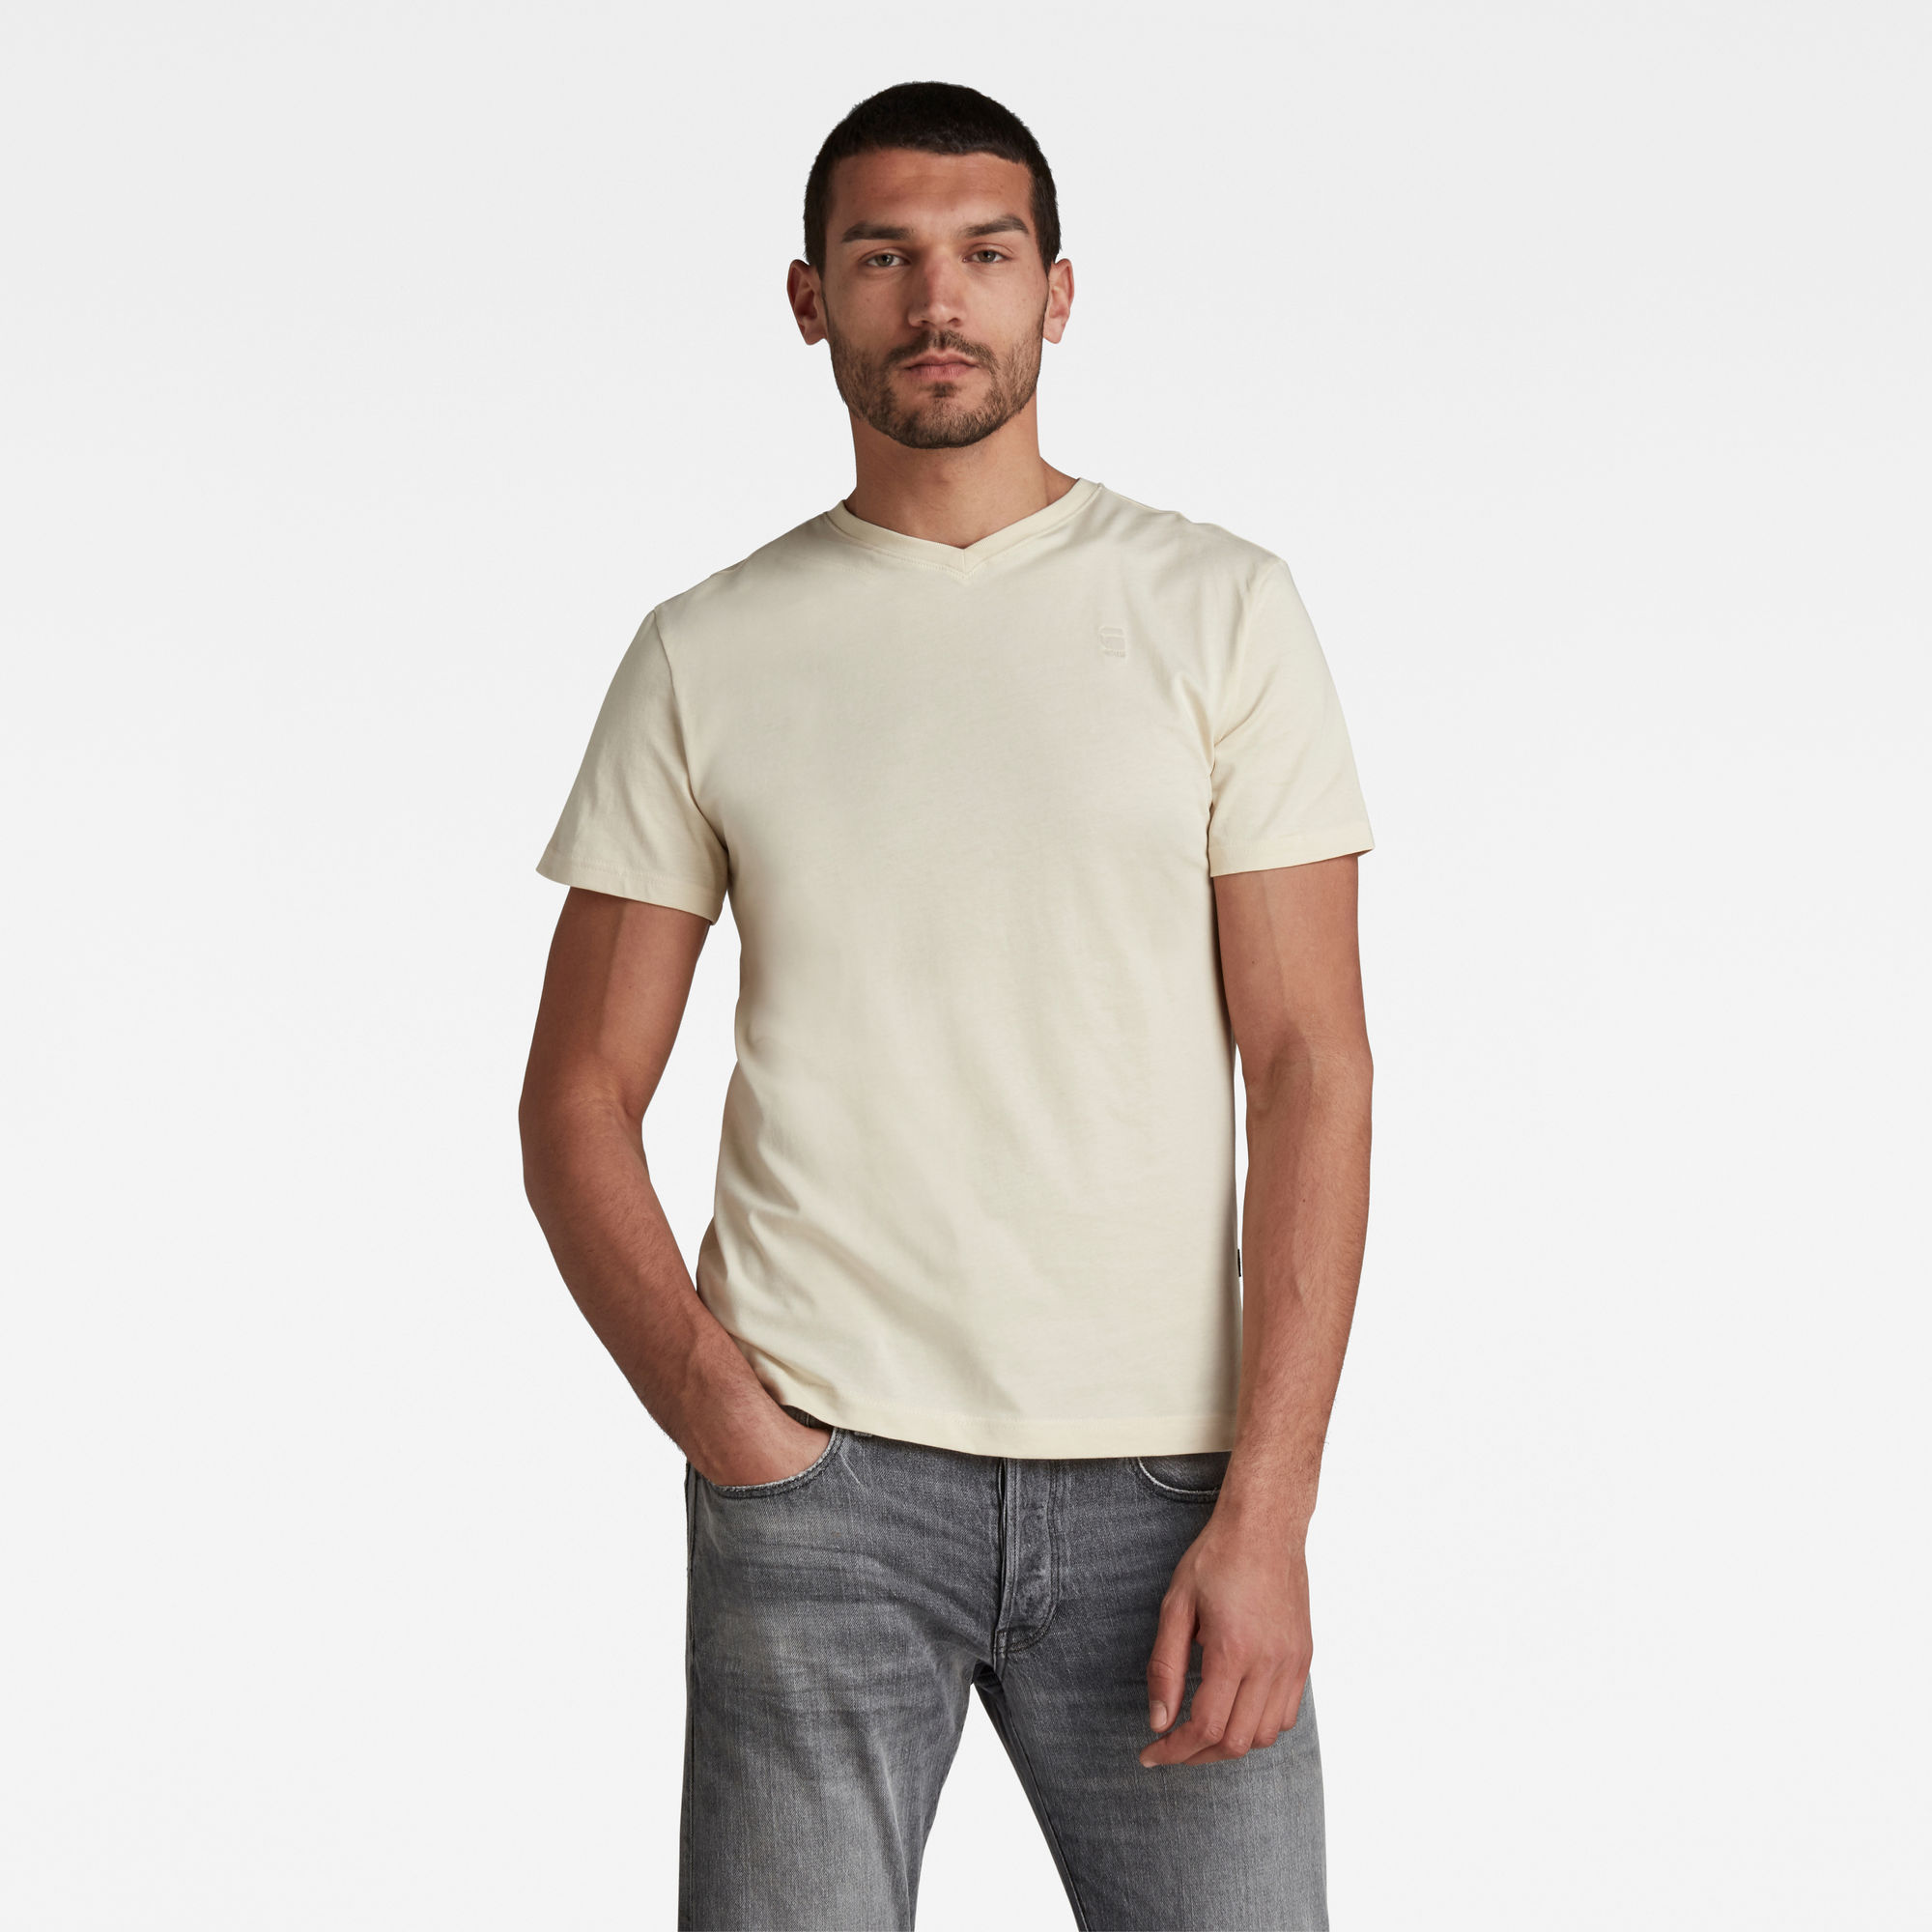 G-Star RAW Hombre Camiseta Base-S Beige